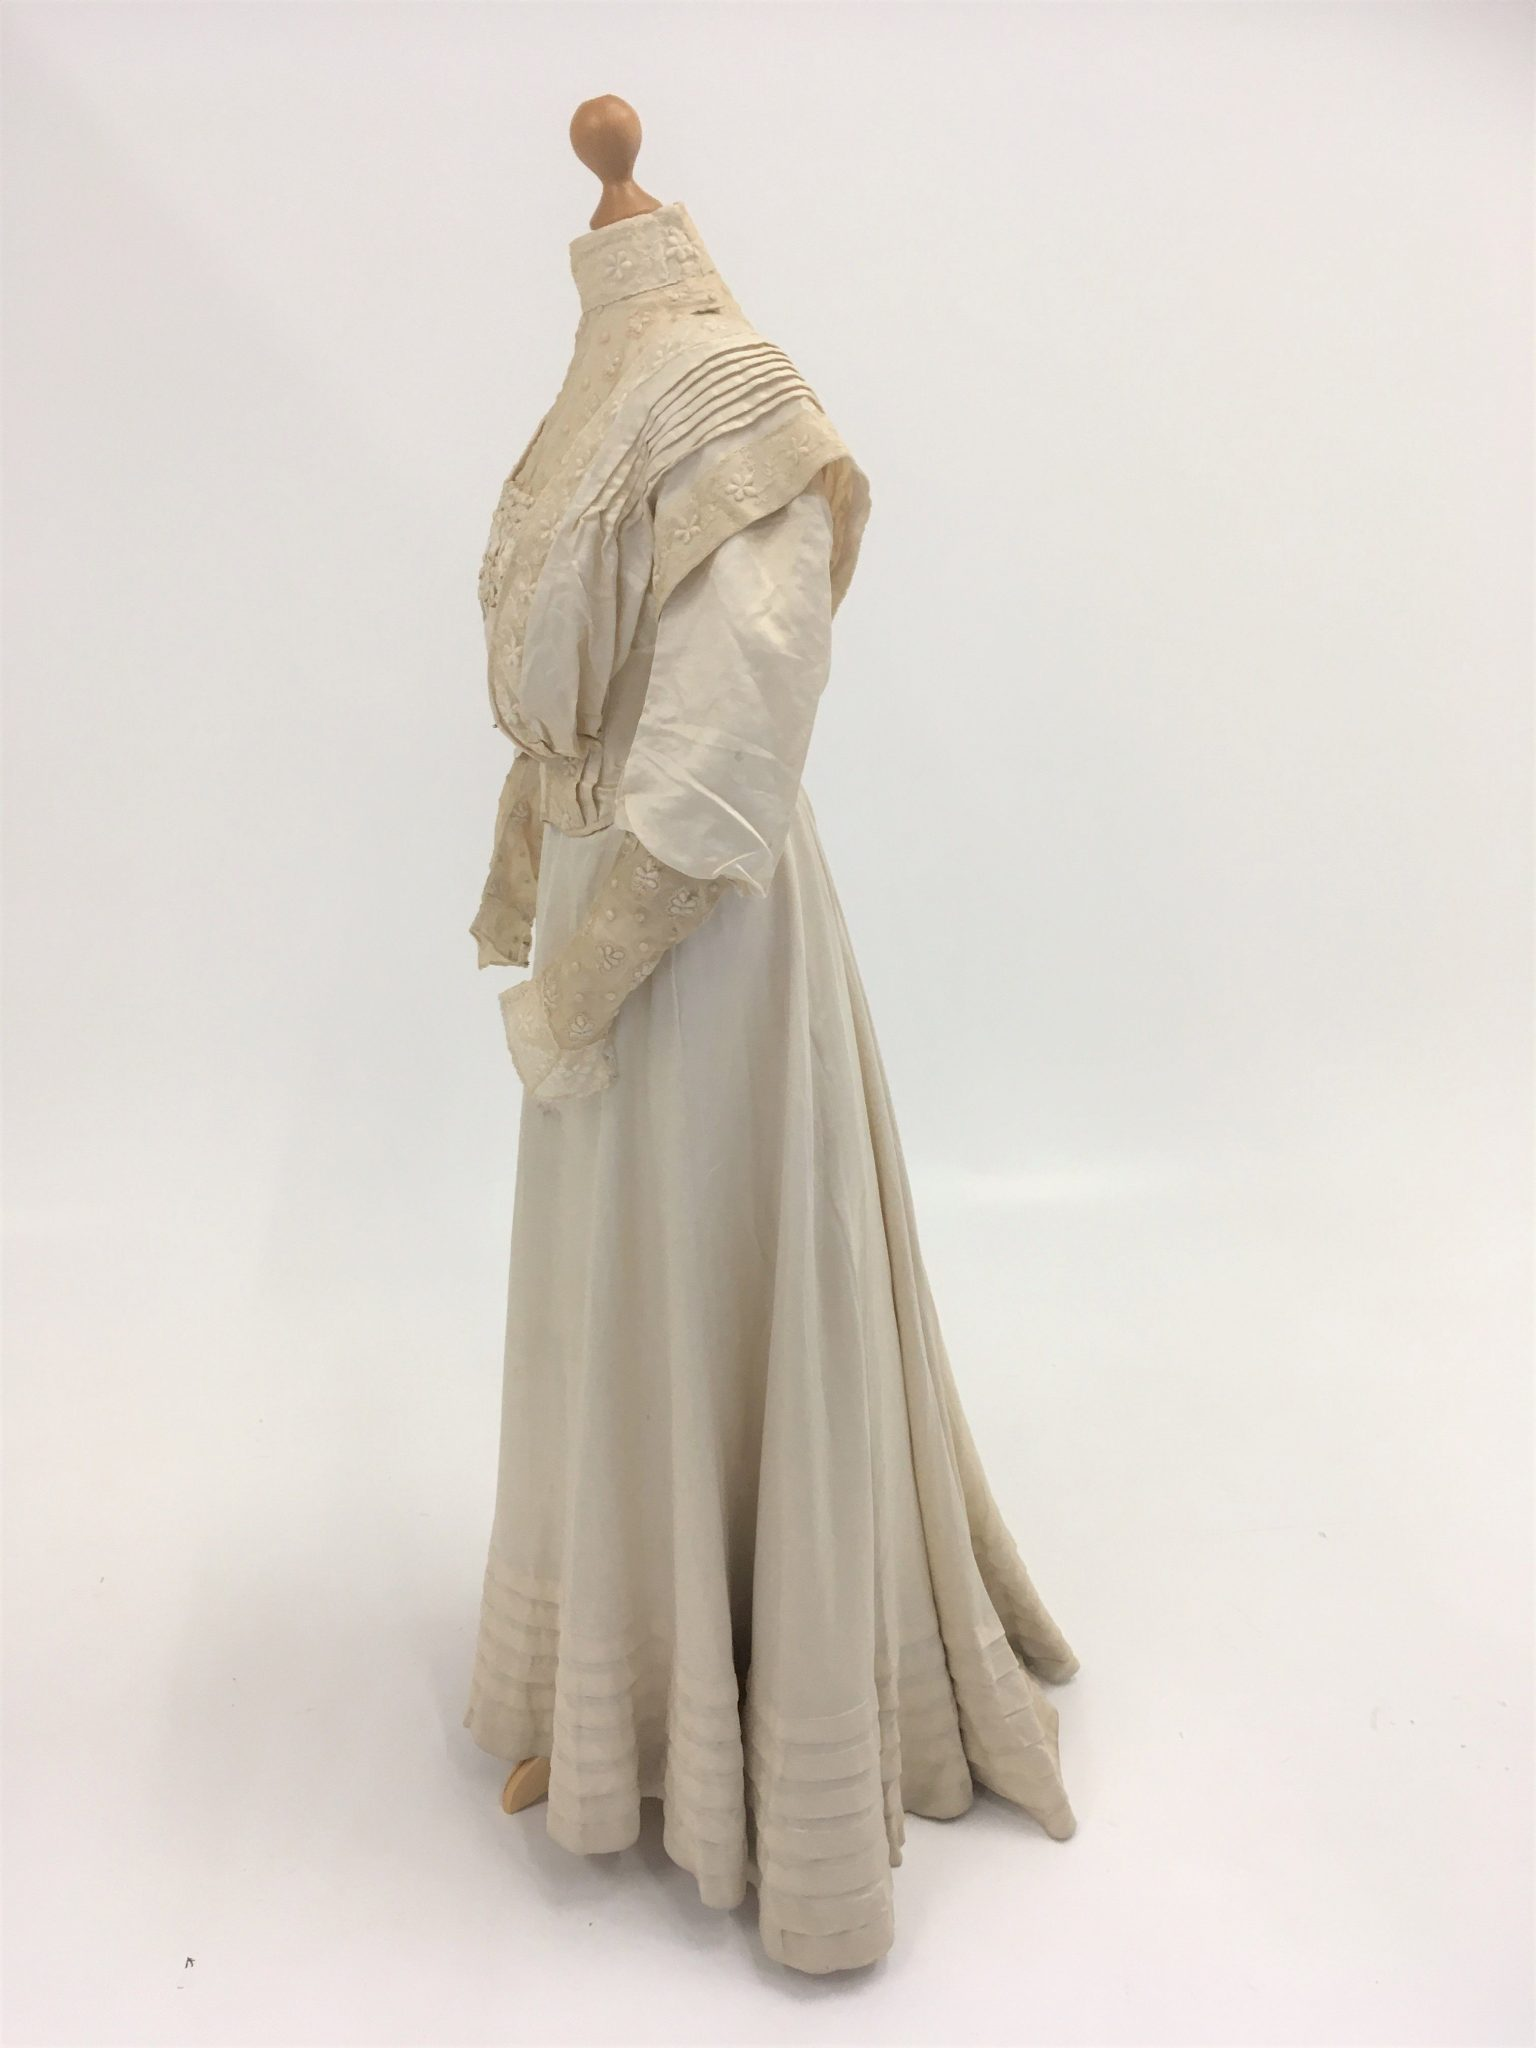 Wedding dress post conservation in the conservator's studio